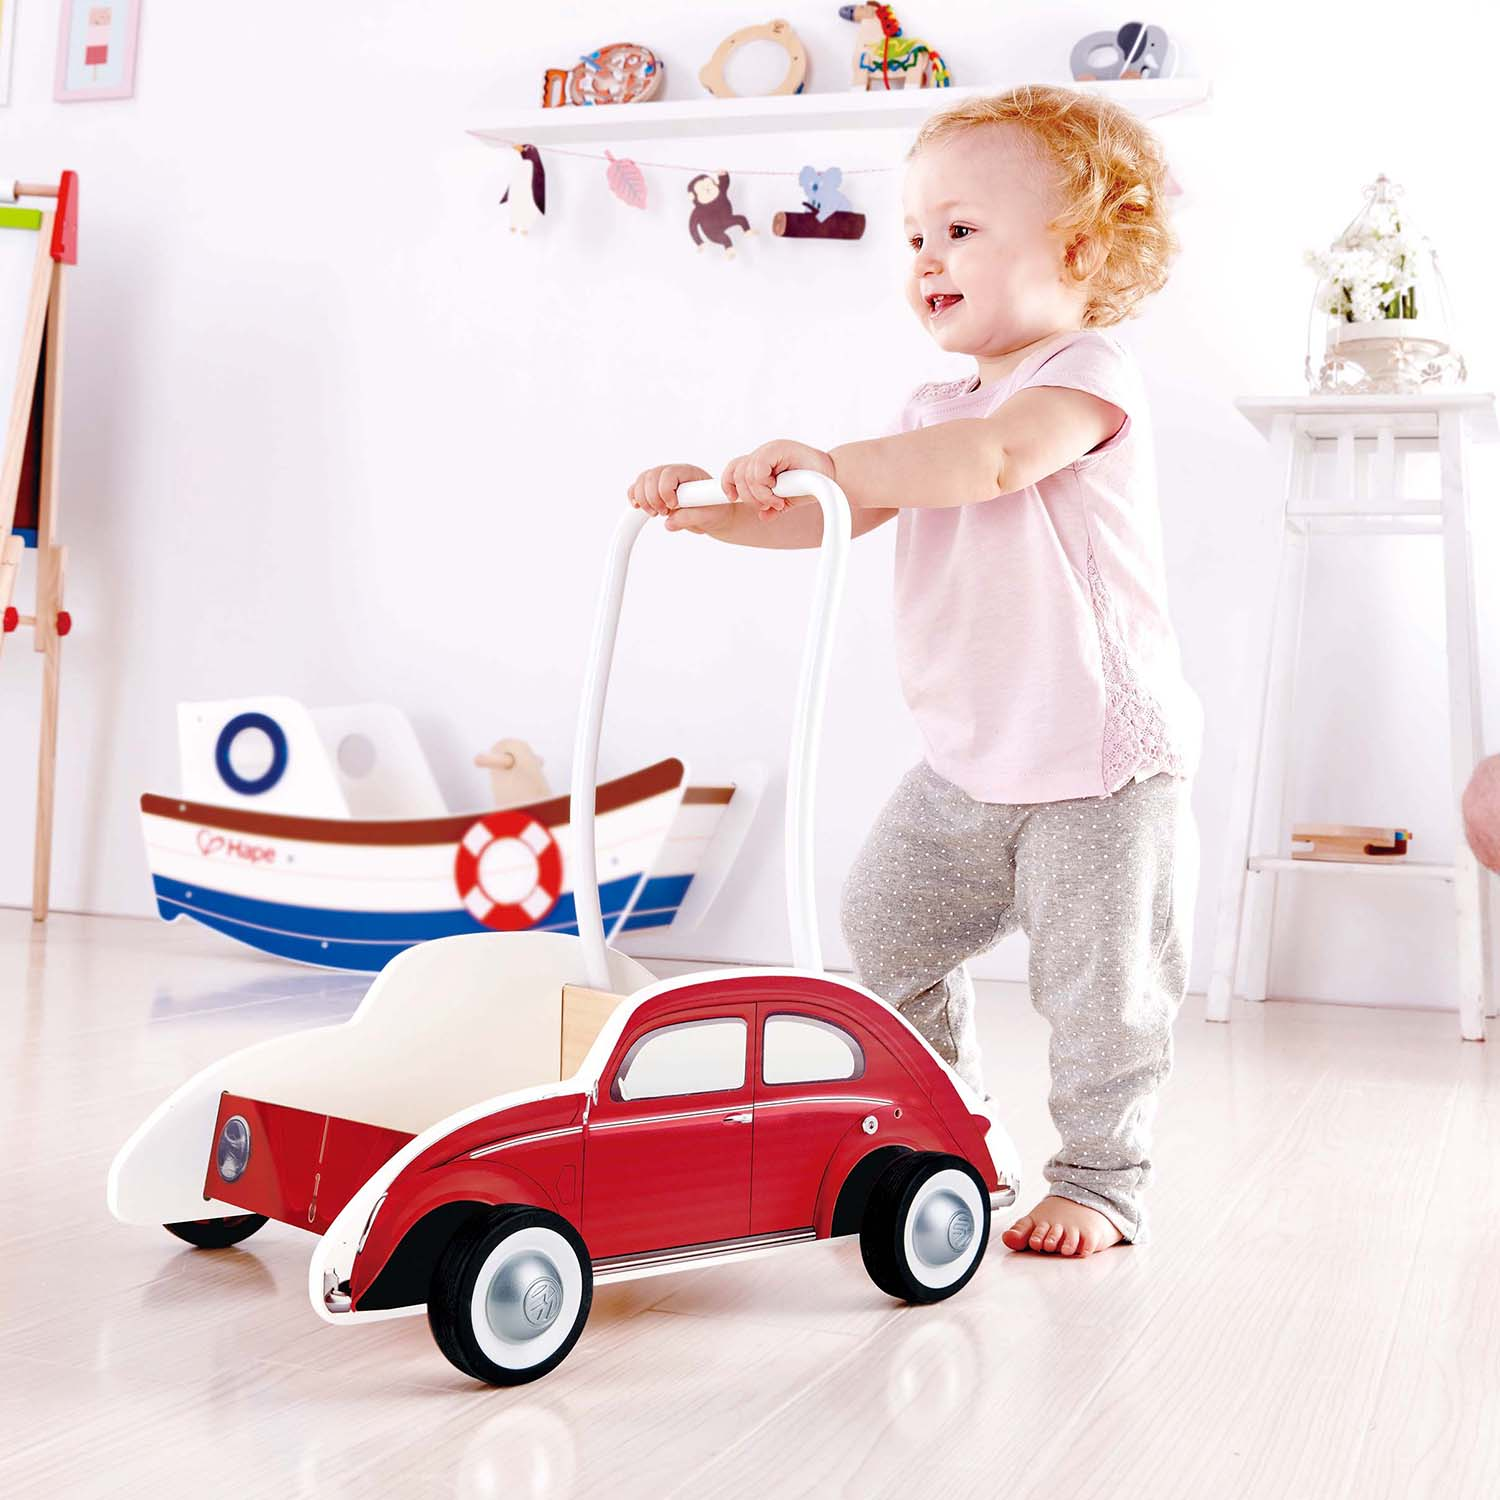 Beetle Walker (Red) | E0380 | Hape Toys